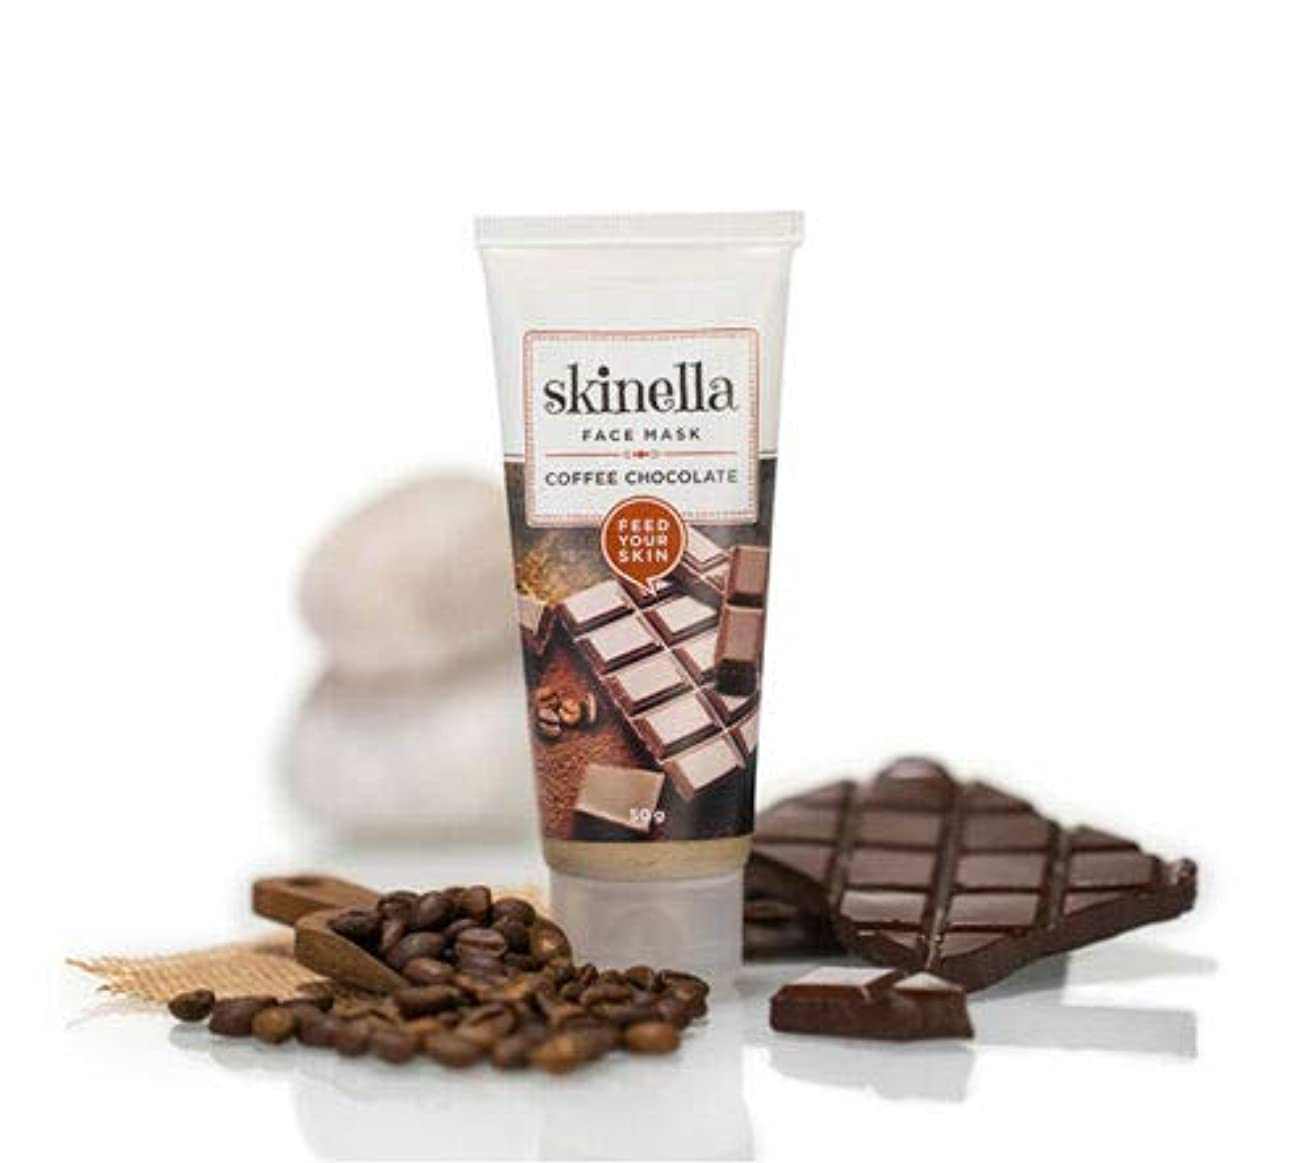 買う畝間明らかにするSkinella Coffee Chocolate Face Mask 50g for a hydrated and rejuvenated look Skinellaコーヒーチョコレートフェイスマスク50g